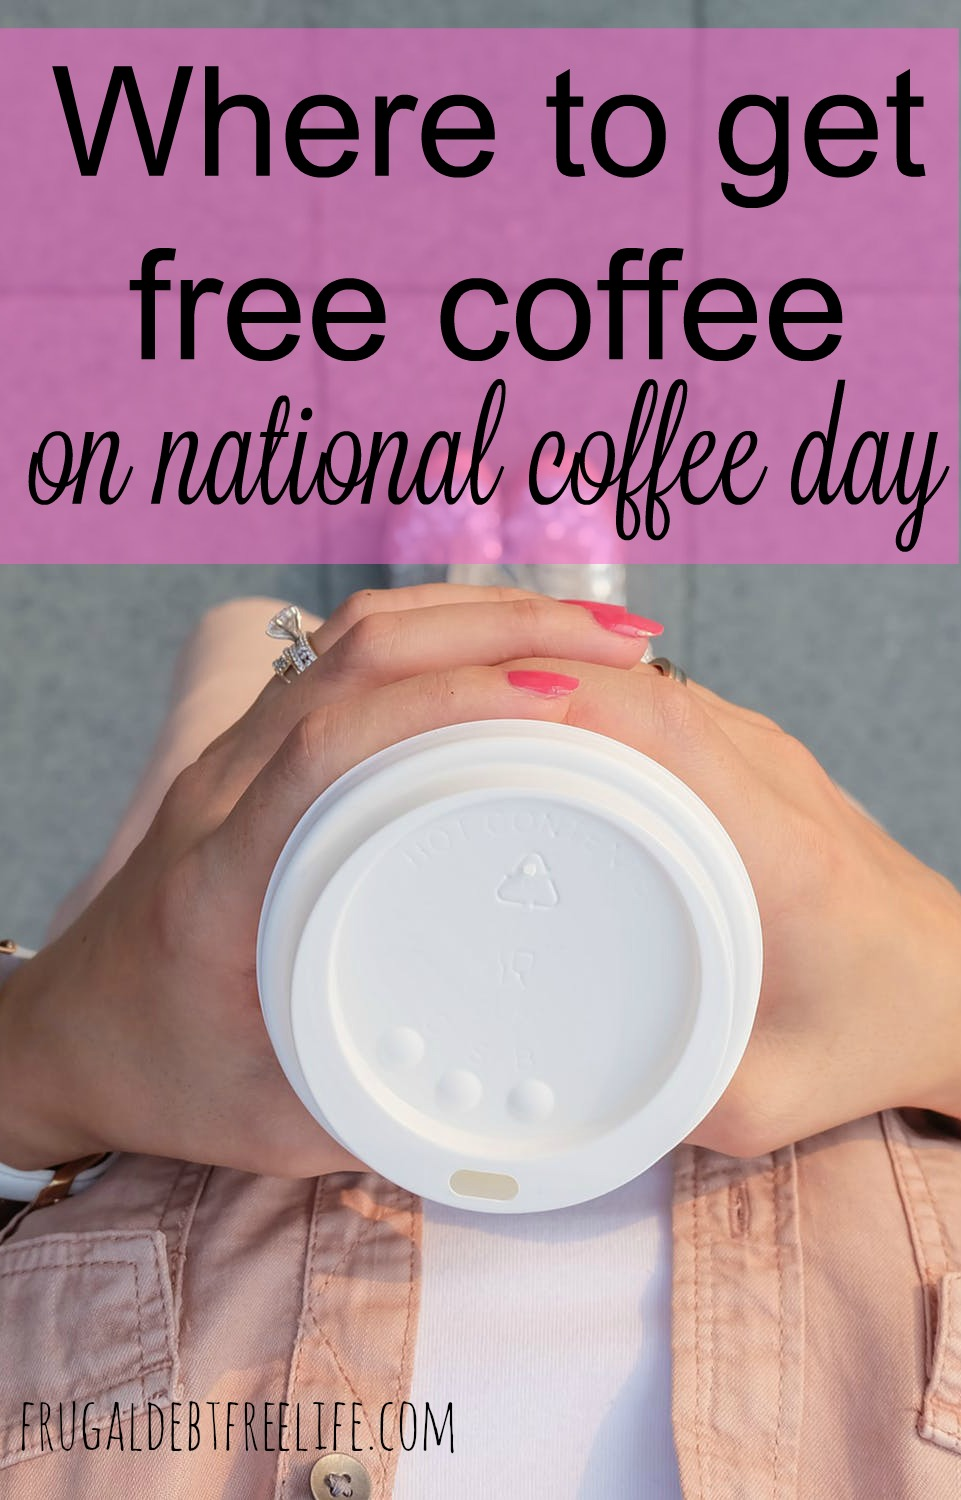 where to get free coffee on national coffee day 2018.jpg